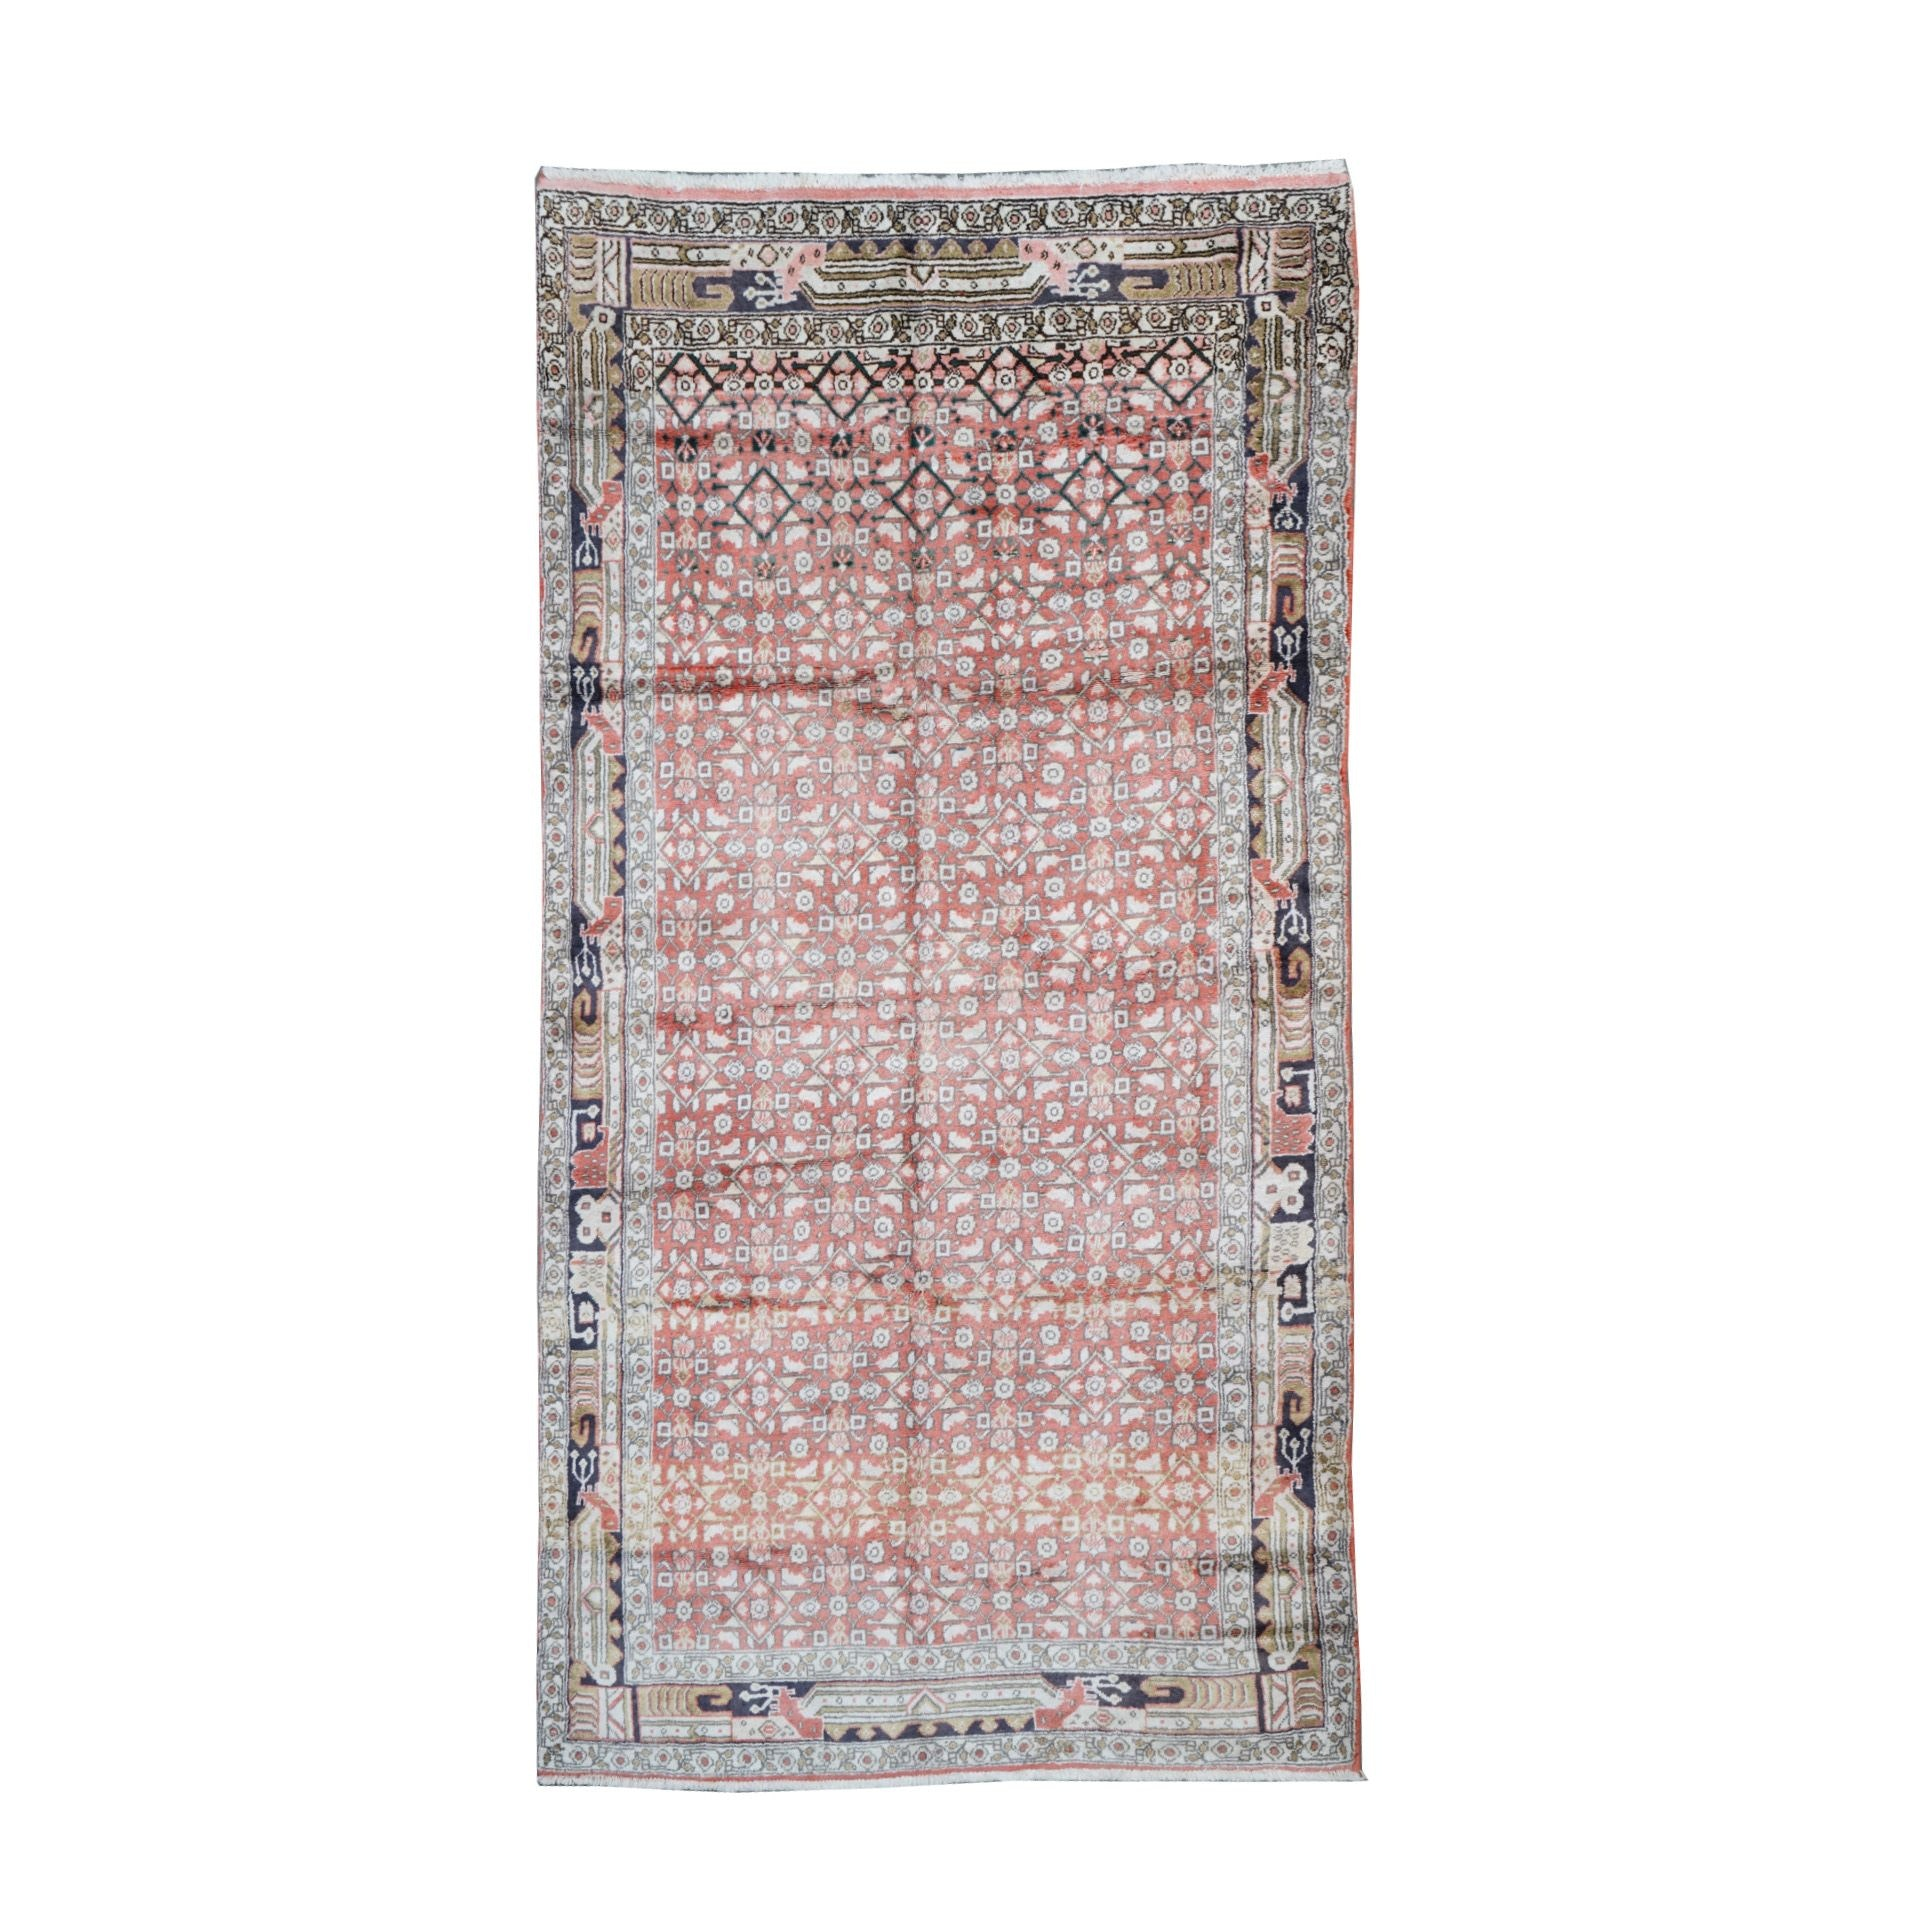 Hand-Knotted Persian Long Rug, Attributed to Hussainabad